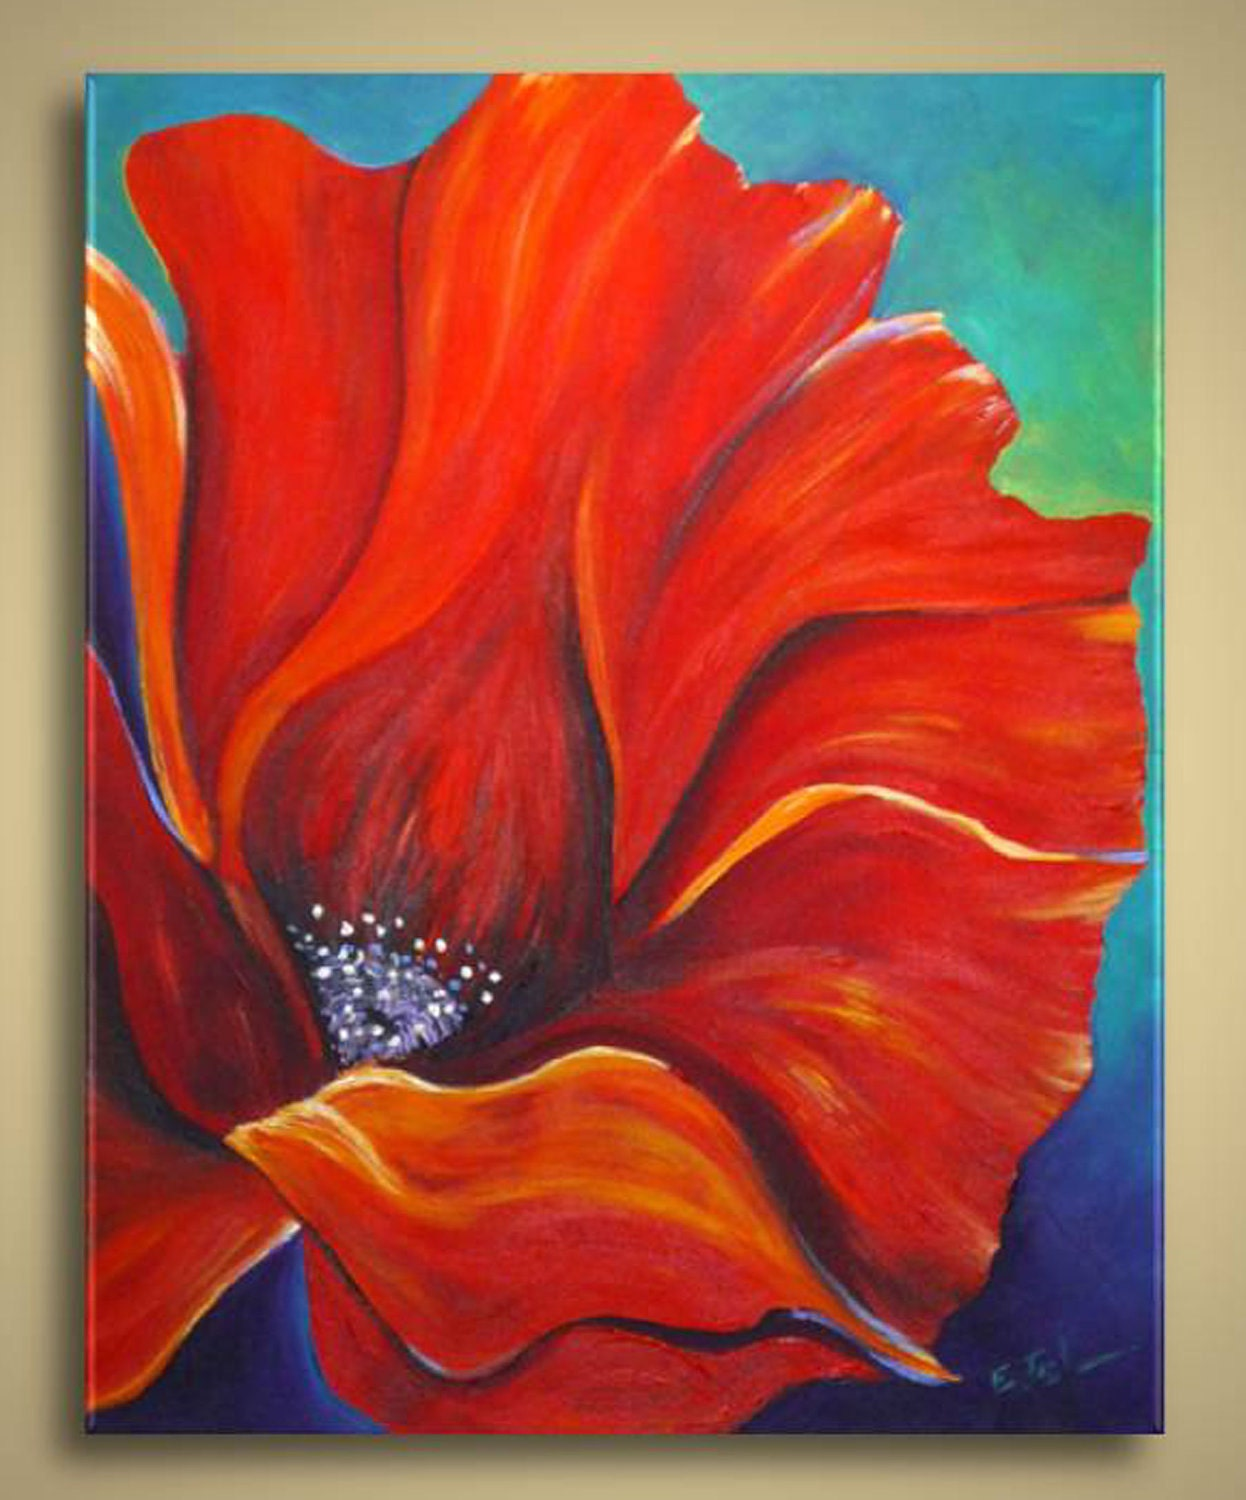 Fabulous Poppy Flower Painting Abstract 1246 x 1500 · 262 kB · jpeg